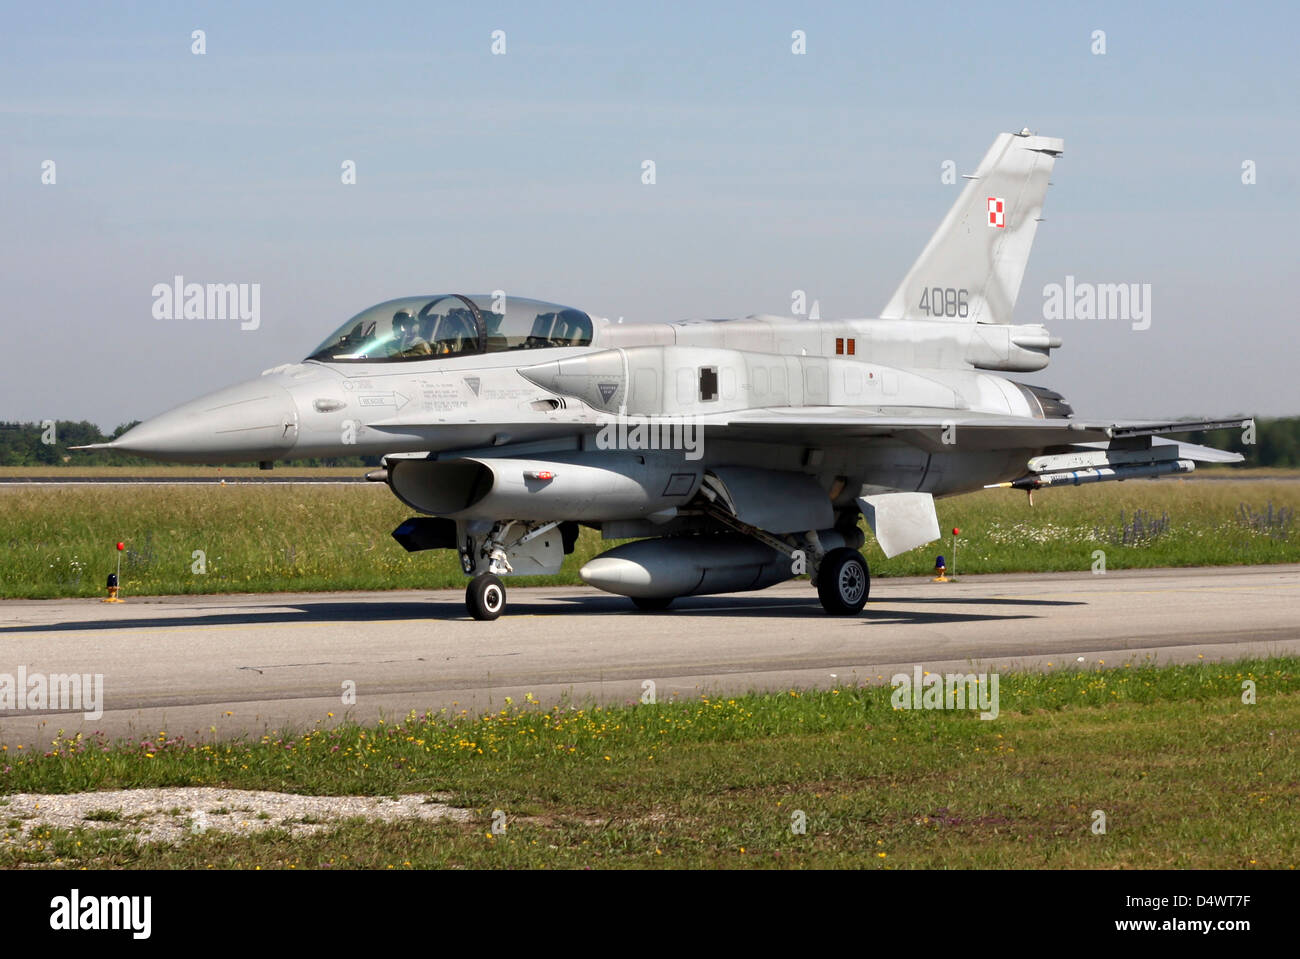 Polish F-16D Block 52 during exercise ELITE, Lechfeld Airfield, Germany. - Stock Image